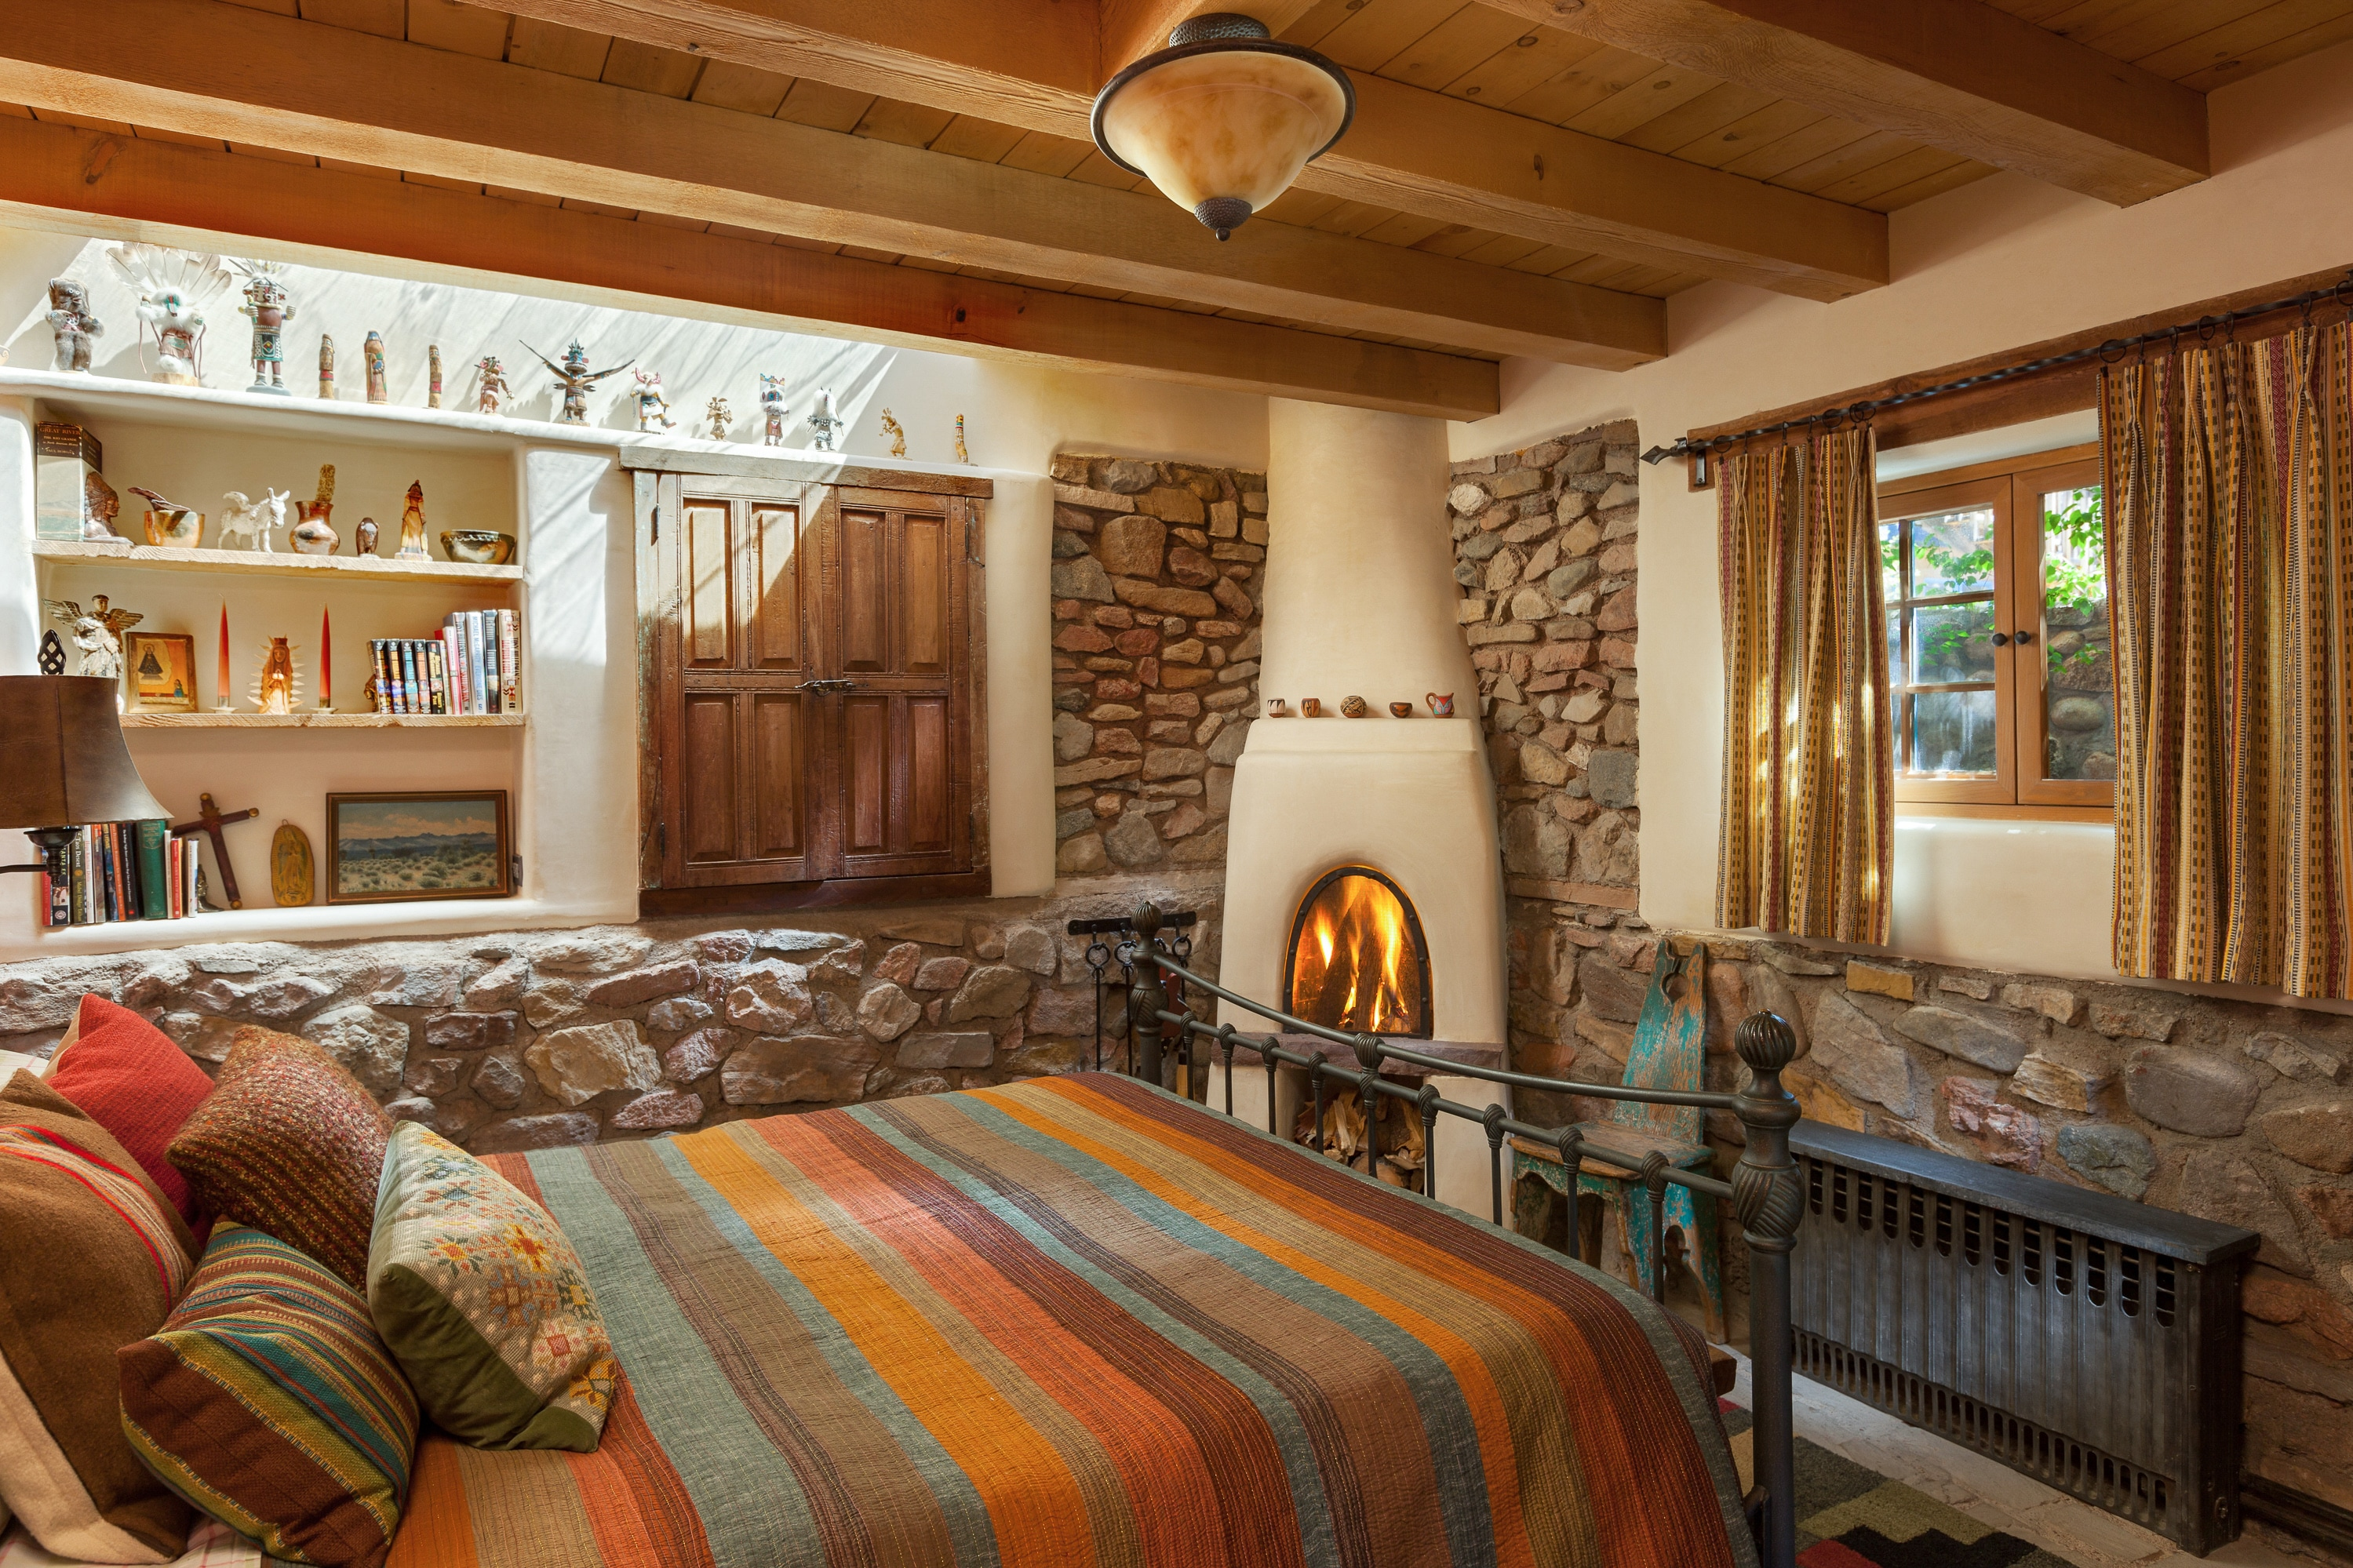 Both bedrooms have wood-burning fireplaces.